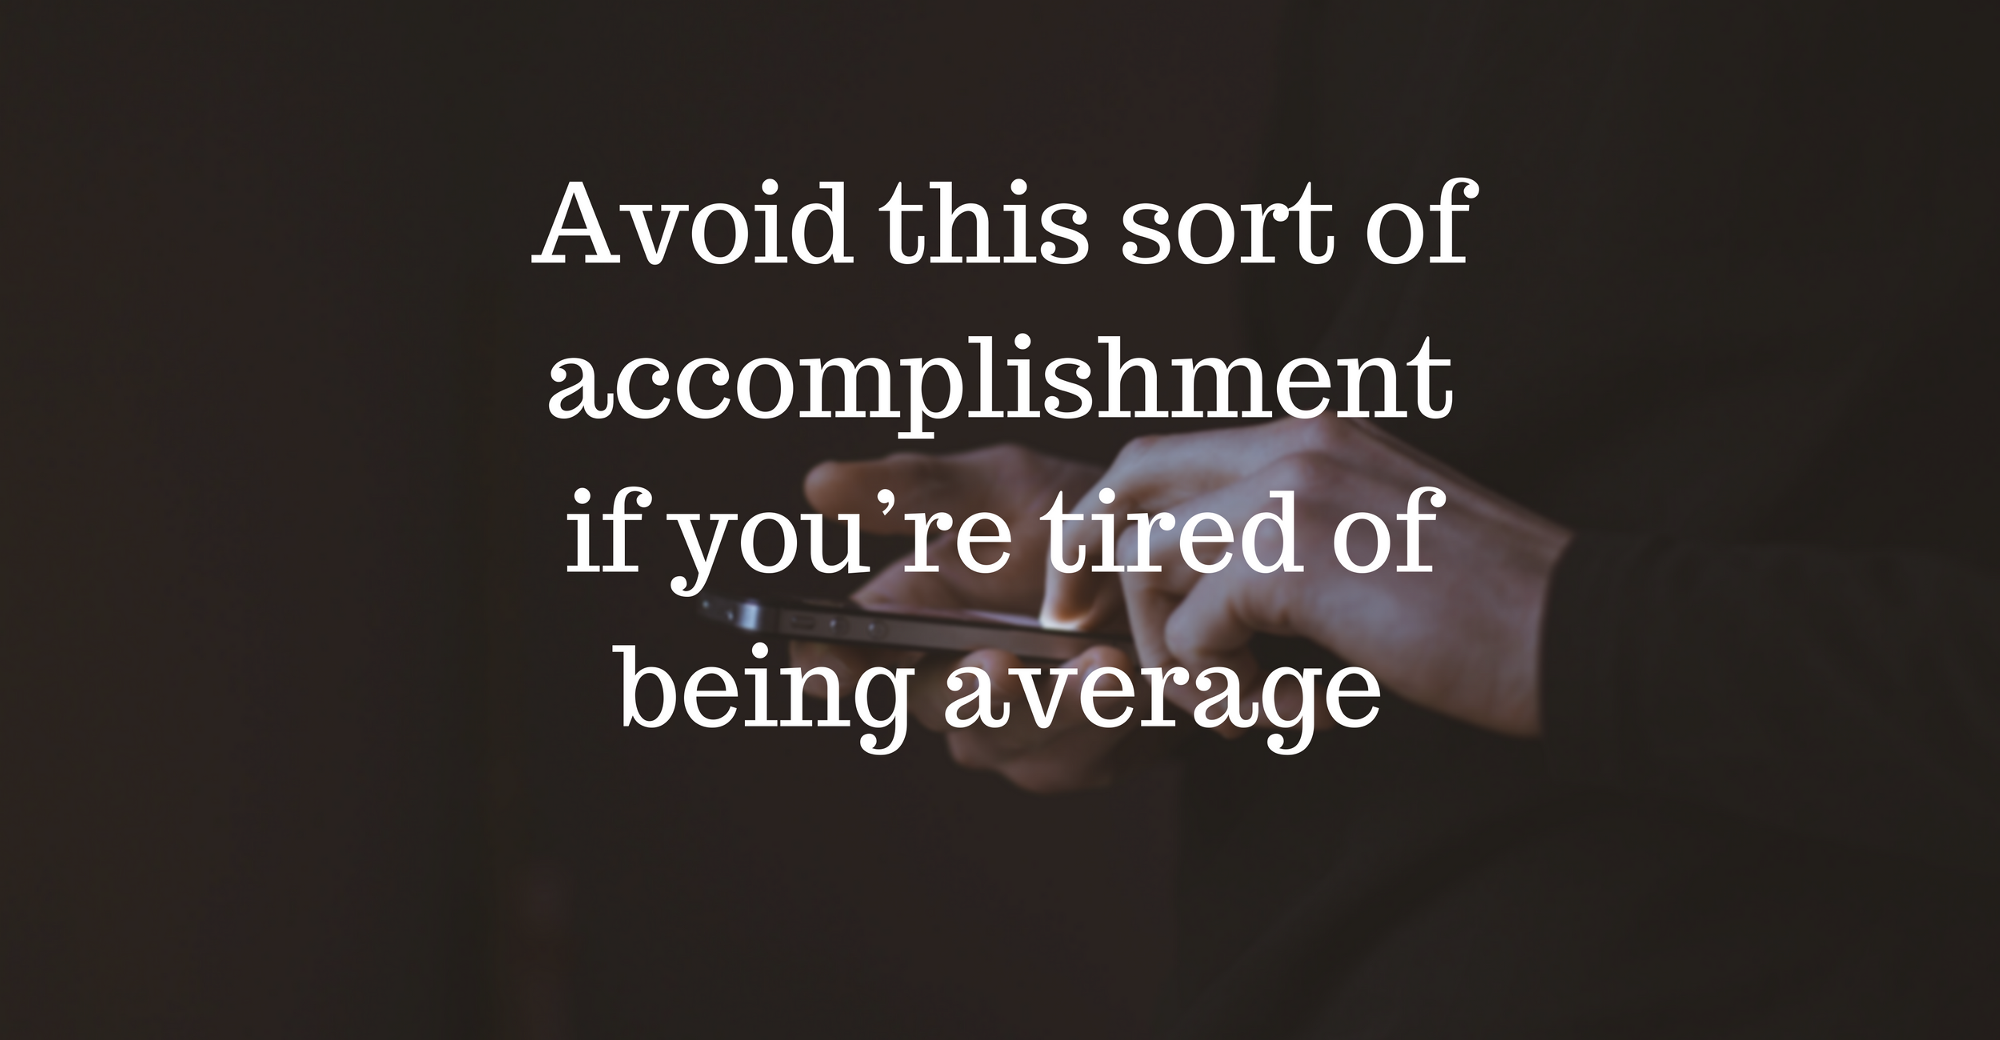 avoid this sort of accomplishment if you re tired of being average